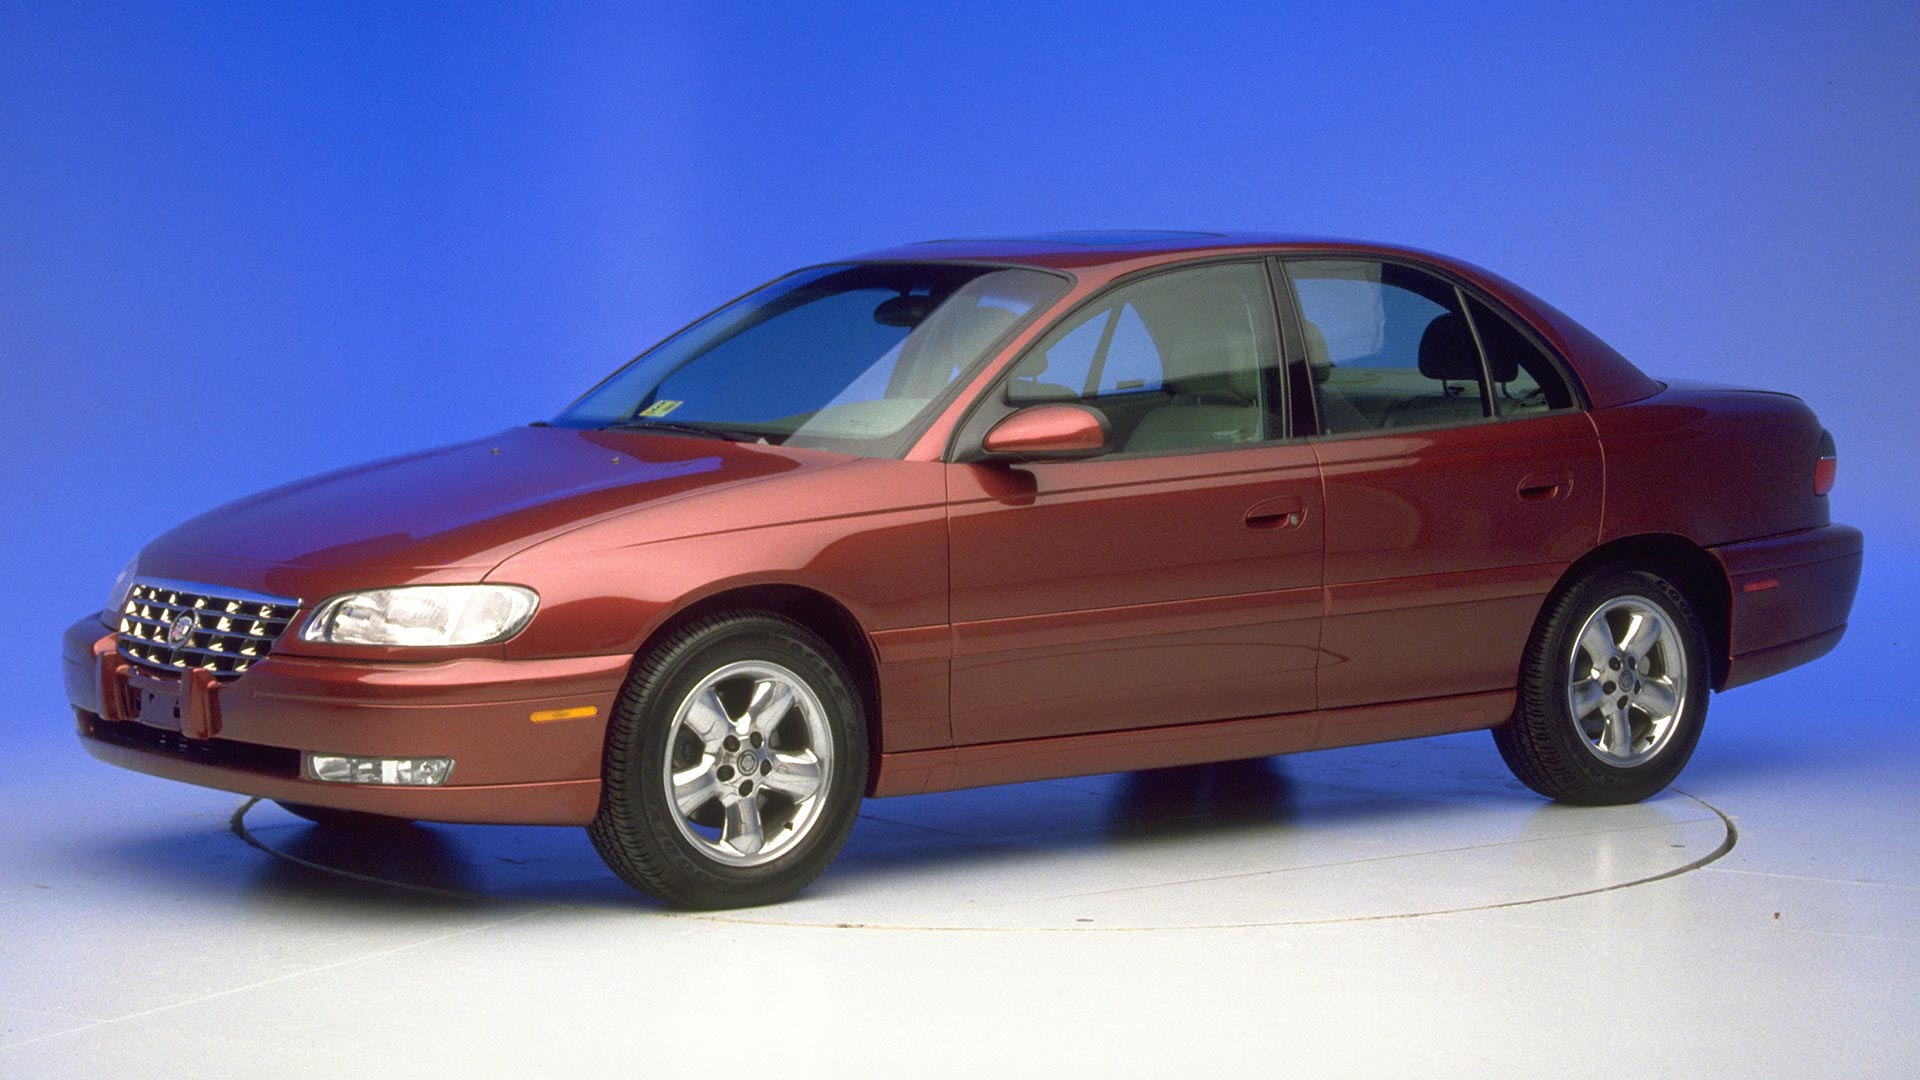 2000 Cadillac Catera 4-door sedan